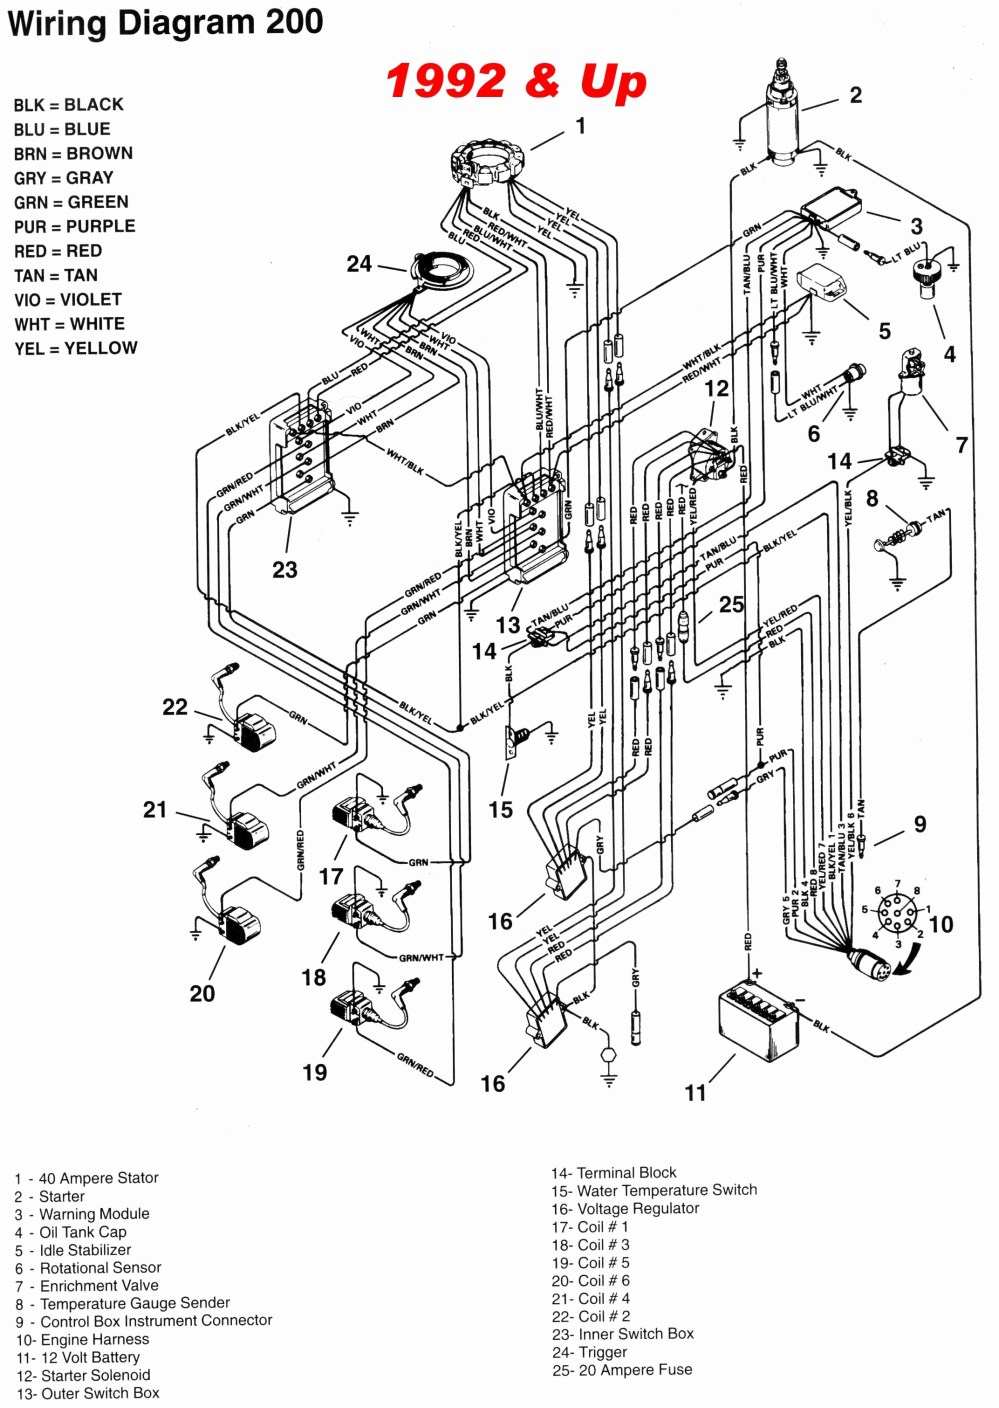 medium resolution of mercury 90 wiring diagram wiring diagram cloud mercury optimax 90 wiring diagram 90 hp mercury outboard